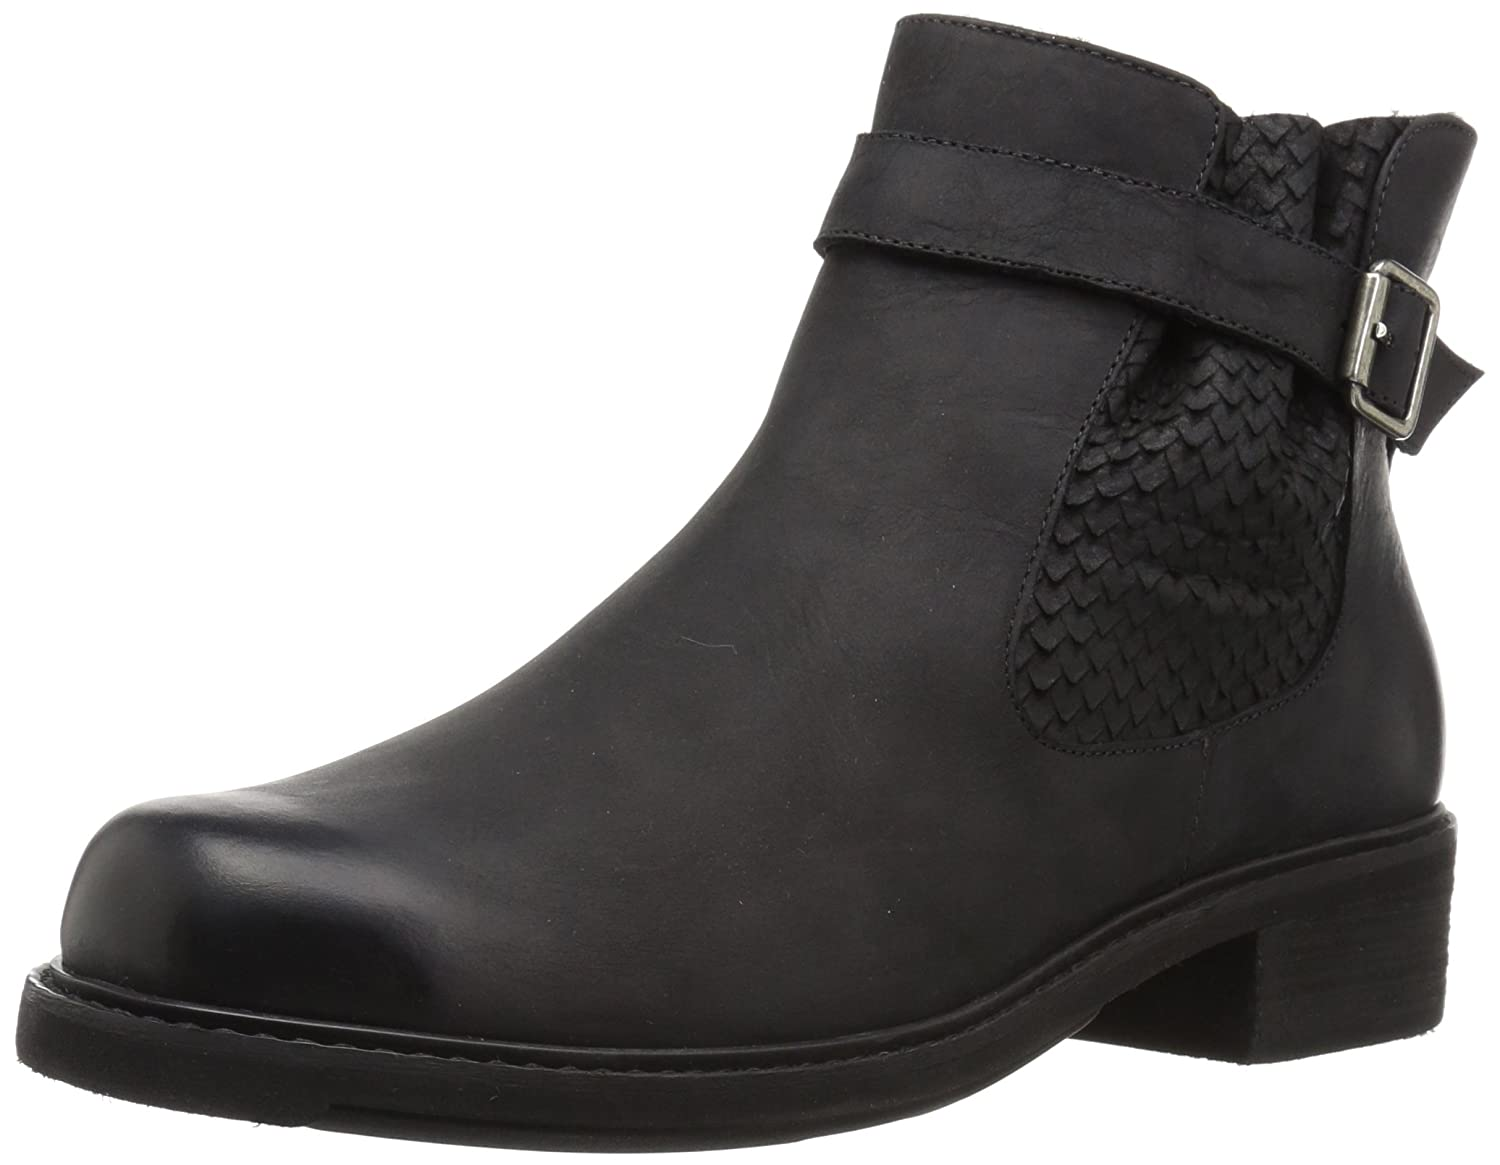 Walking Cradles Women's Devin Ankle Boot B005AZT7V8 7.5 B(M) US|Black Distressed